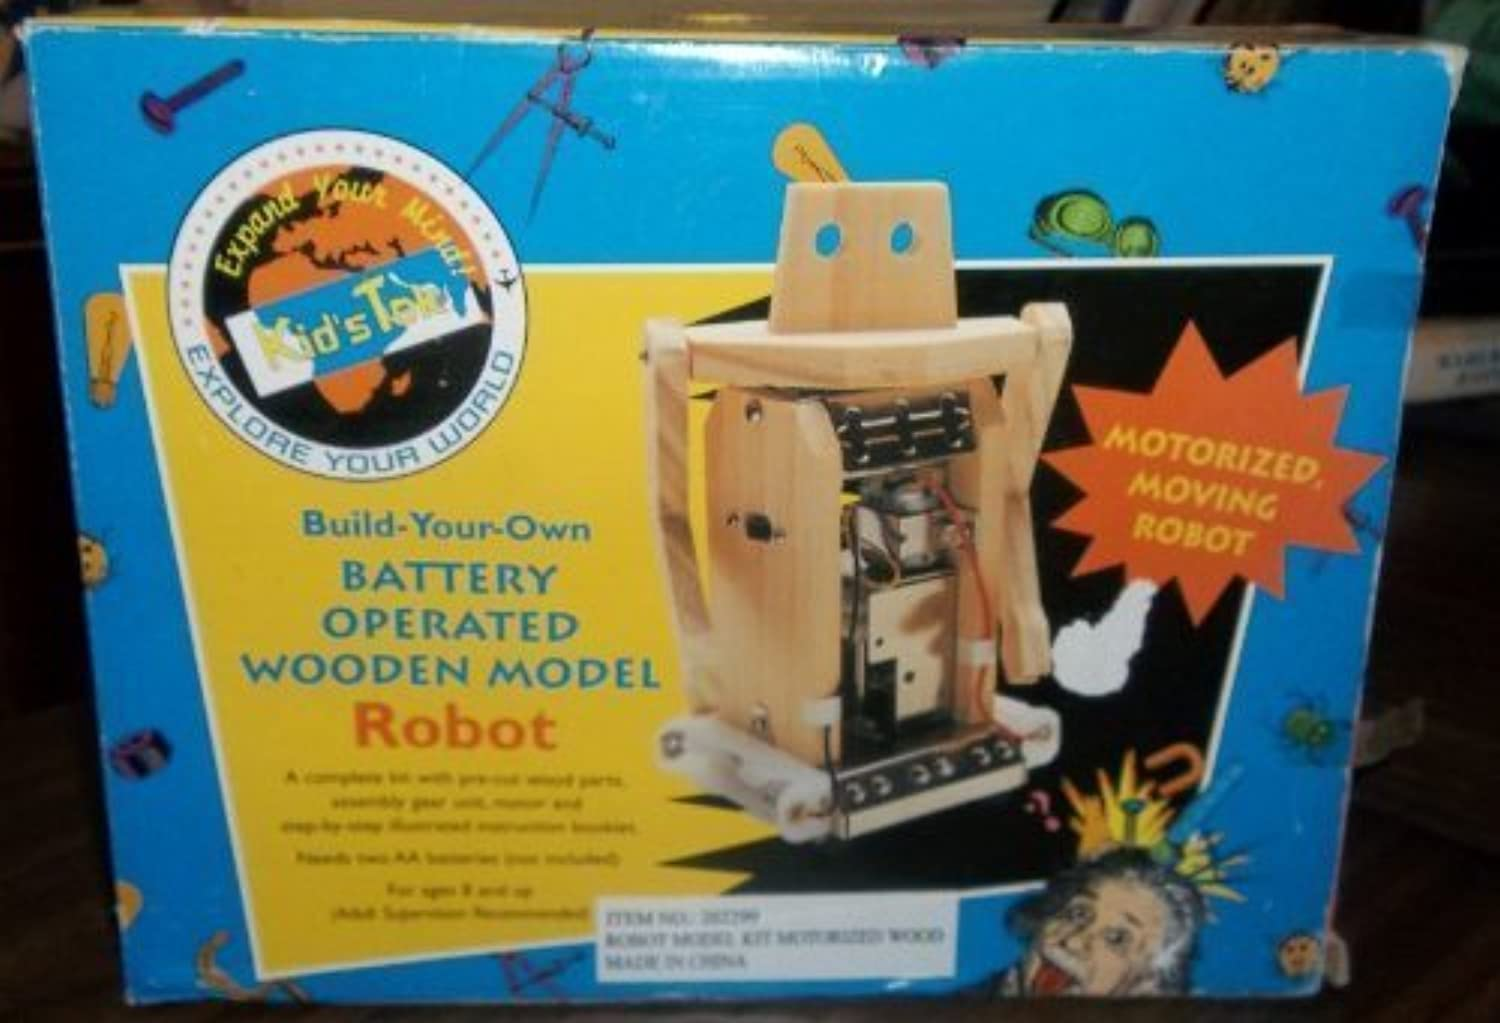 Build Your Own Battery Operated Wooden ROBOT Model